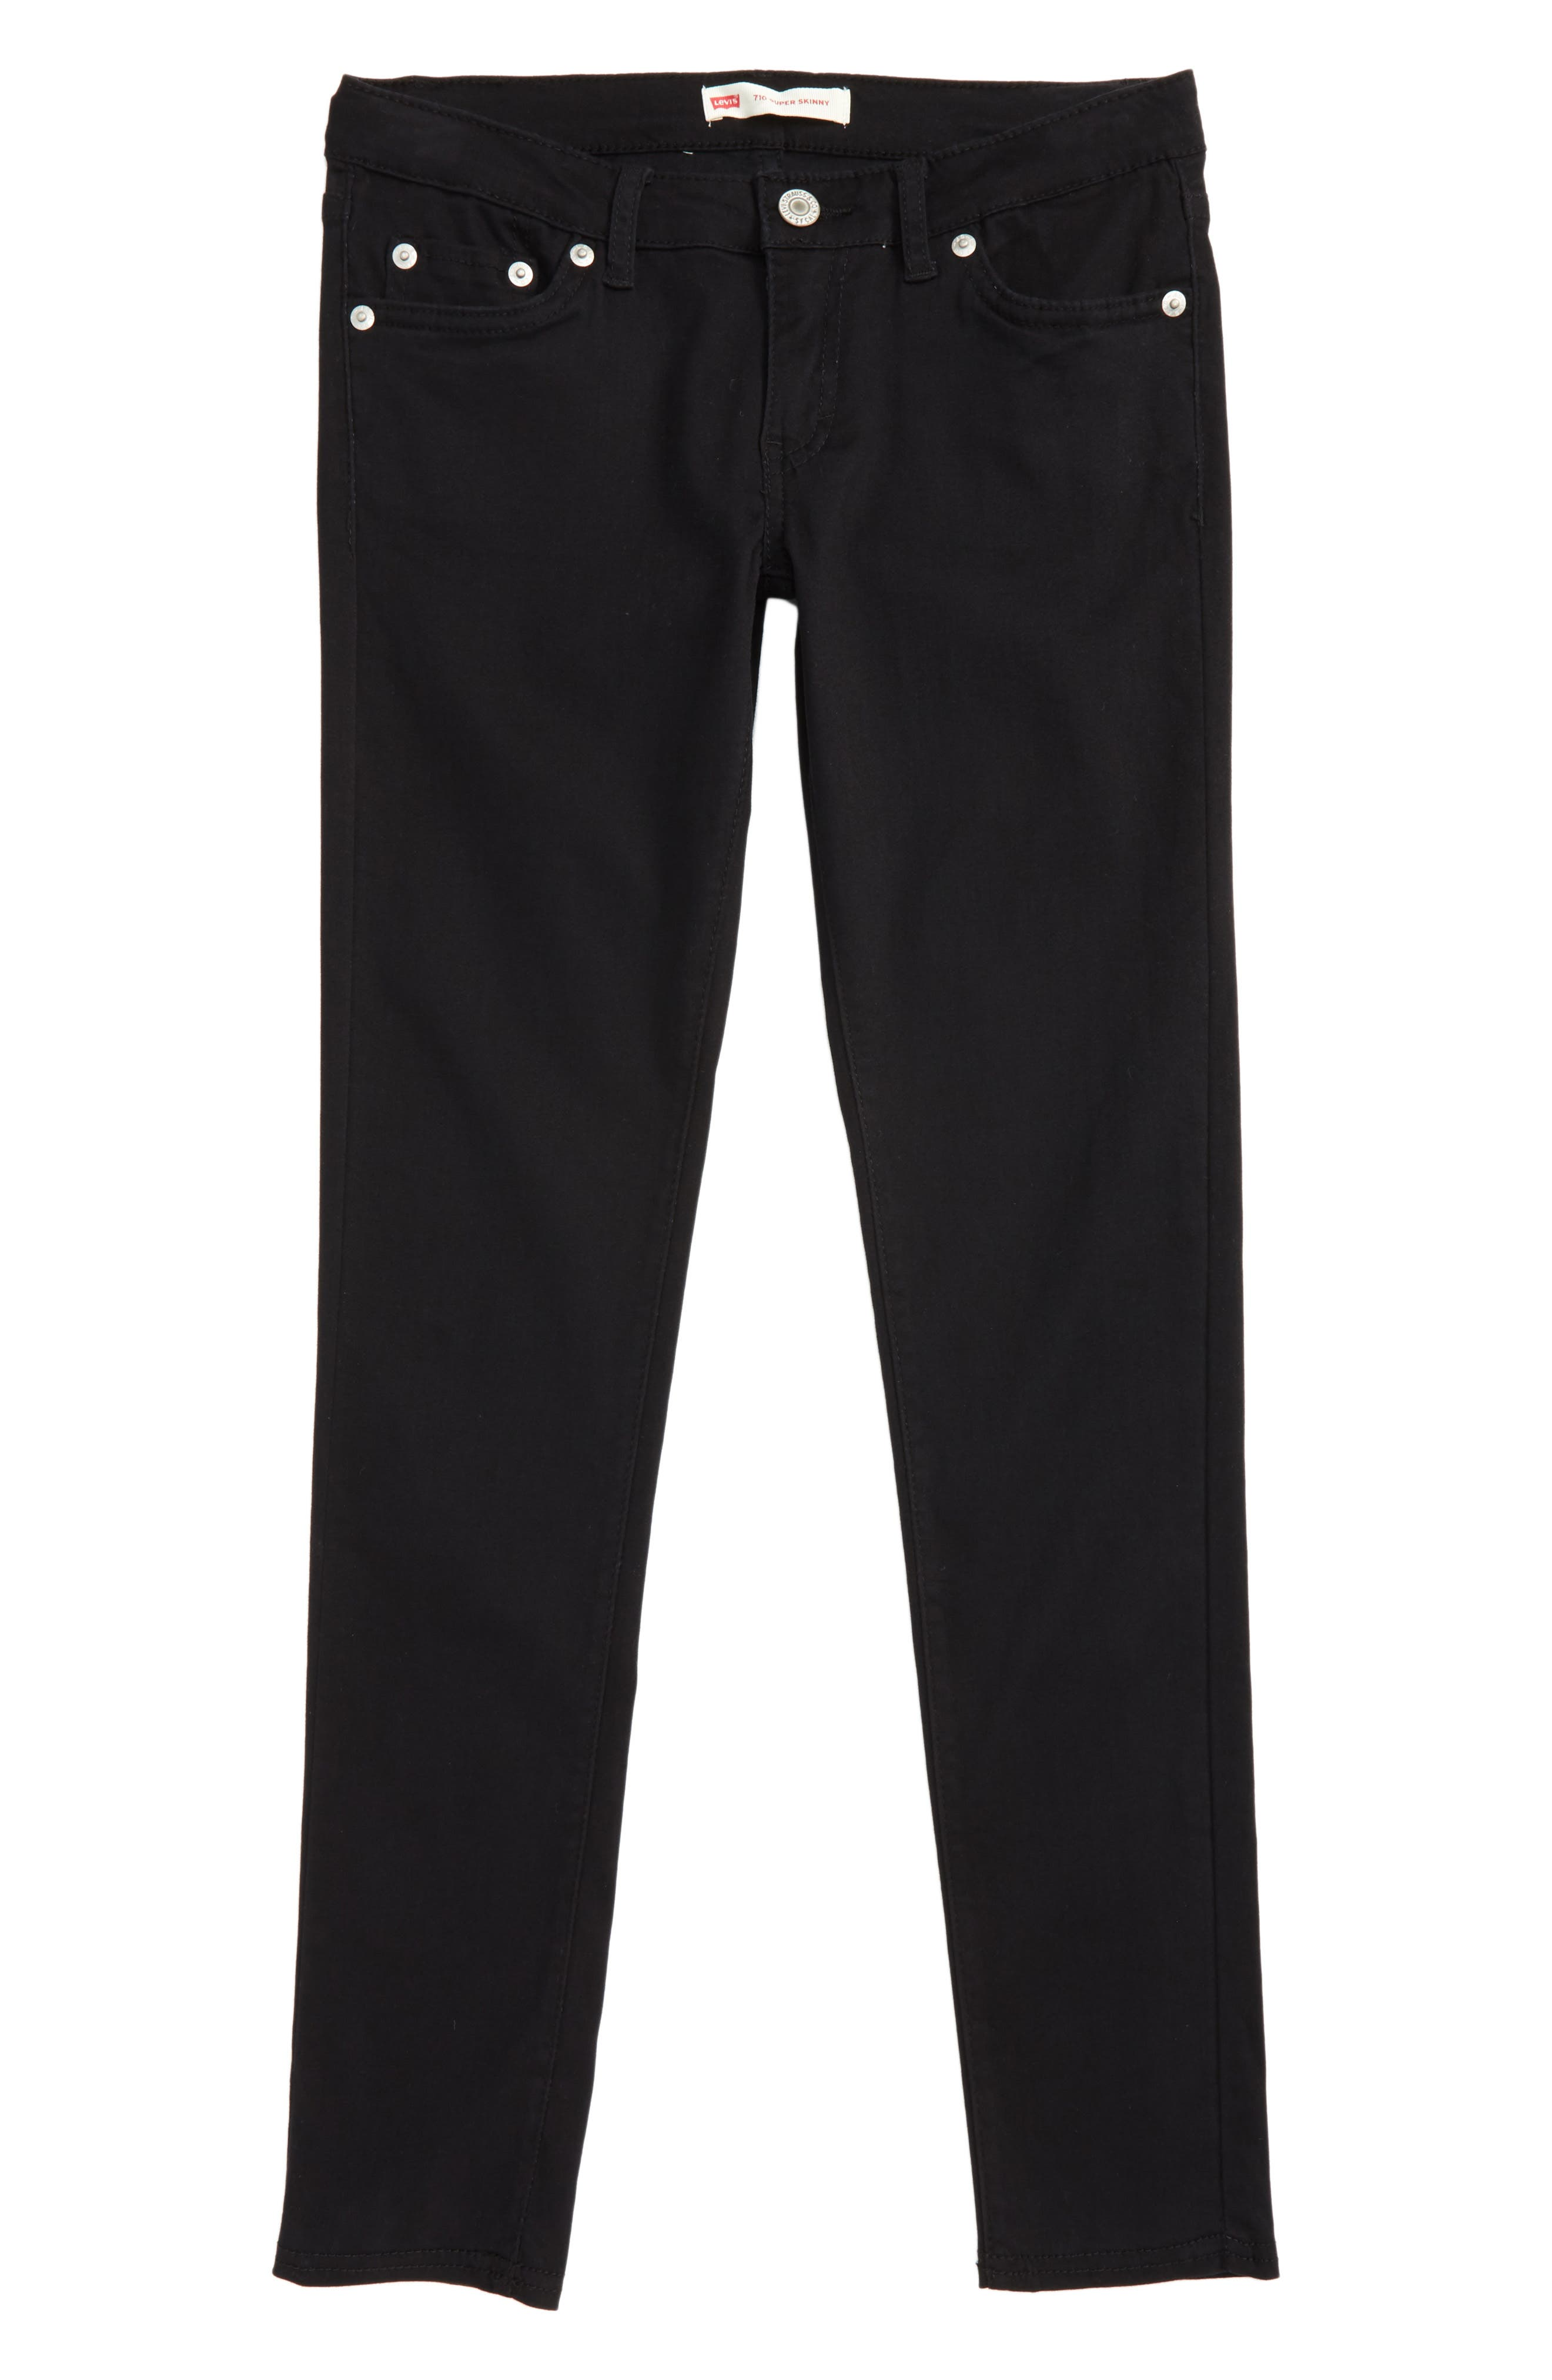 710<sup>™</sup> Super Skinny Stretch Jeans,                             Main thumbnail 1, color,                             001